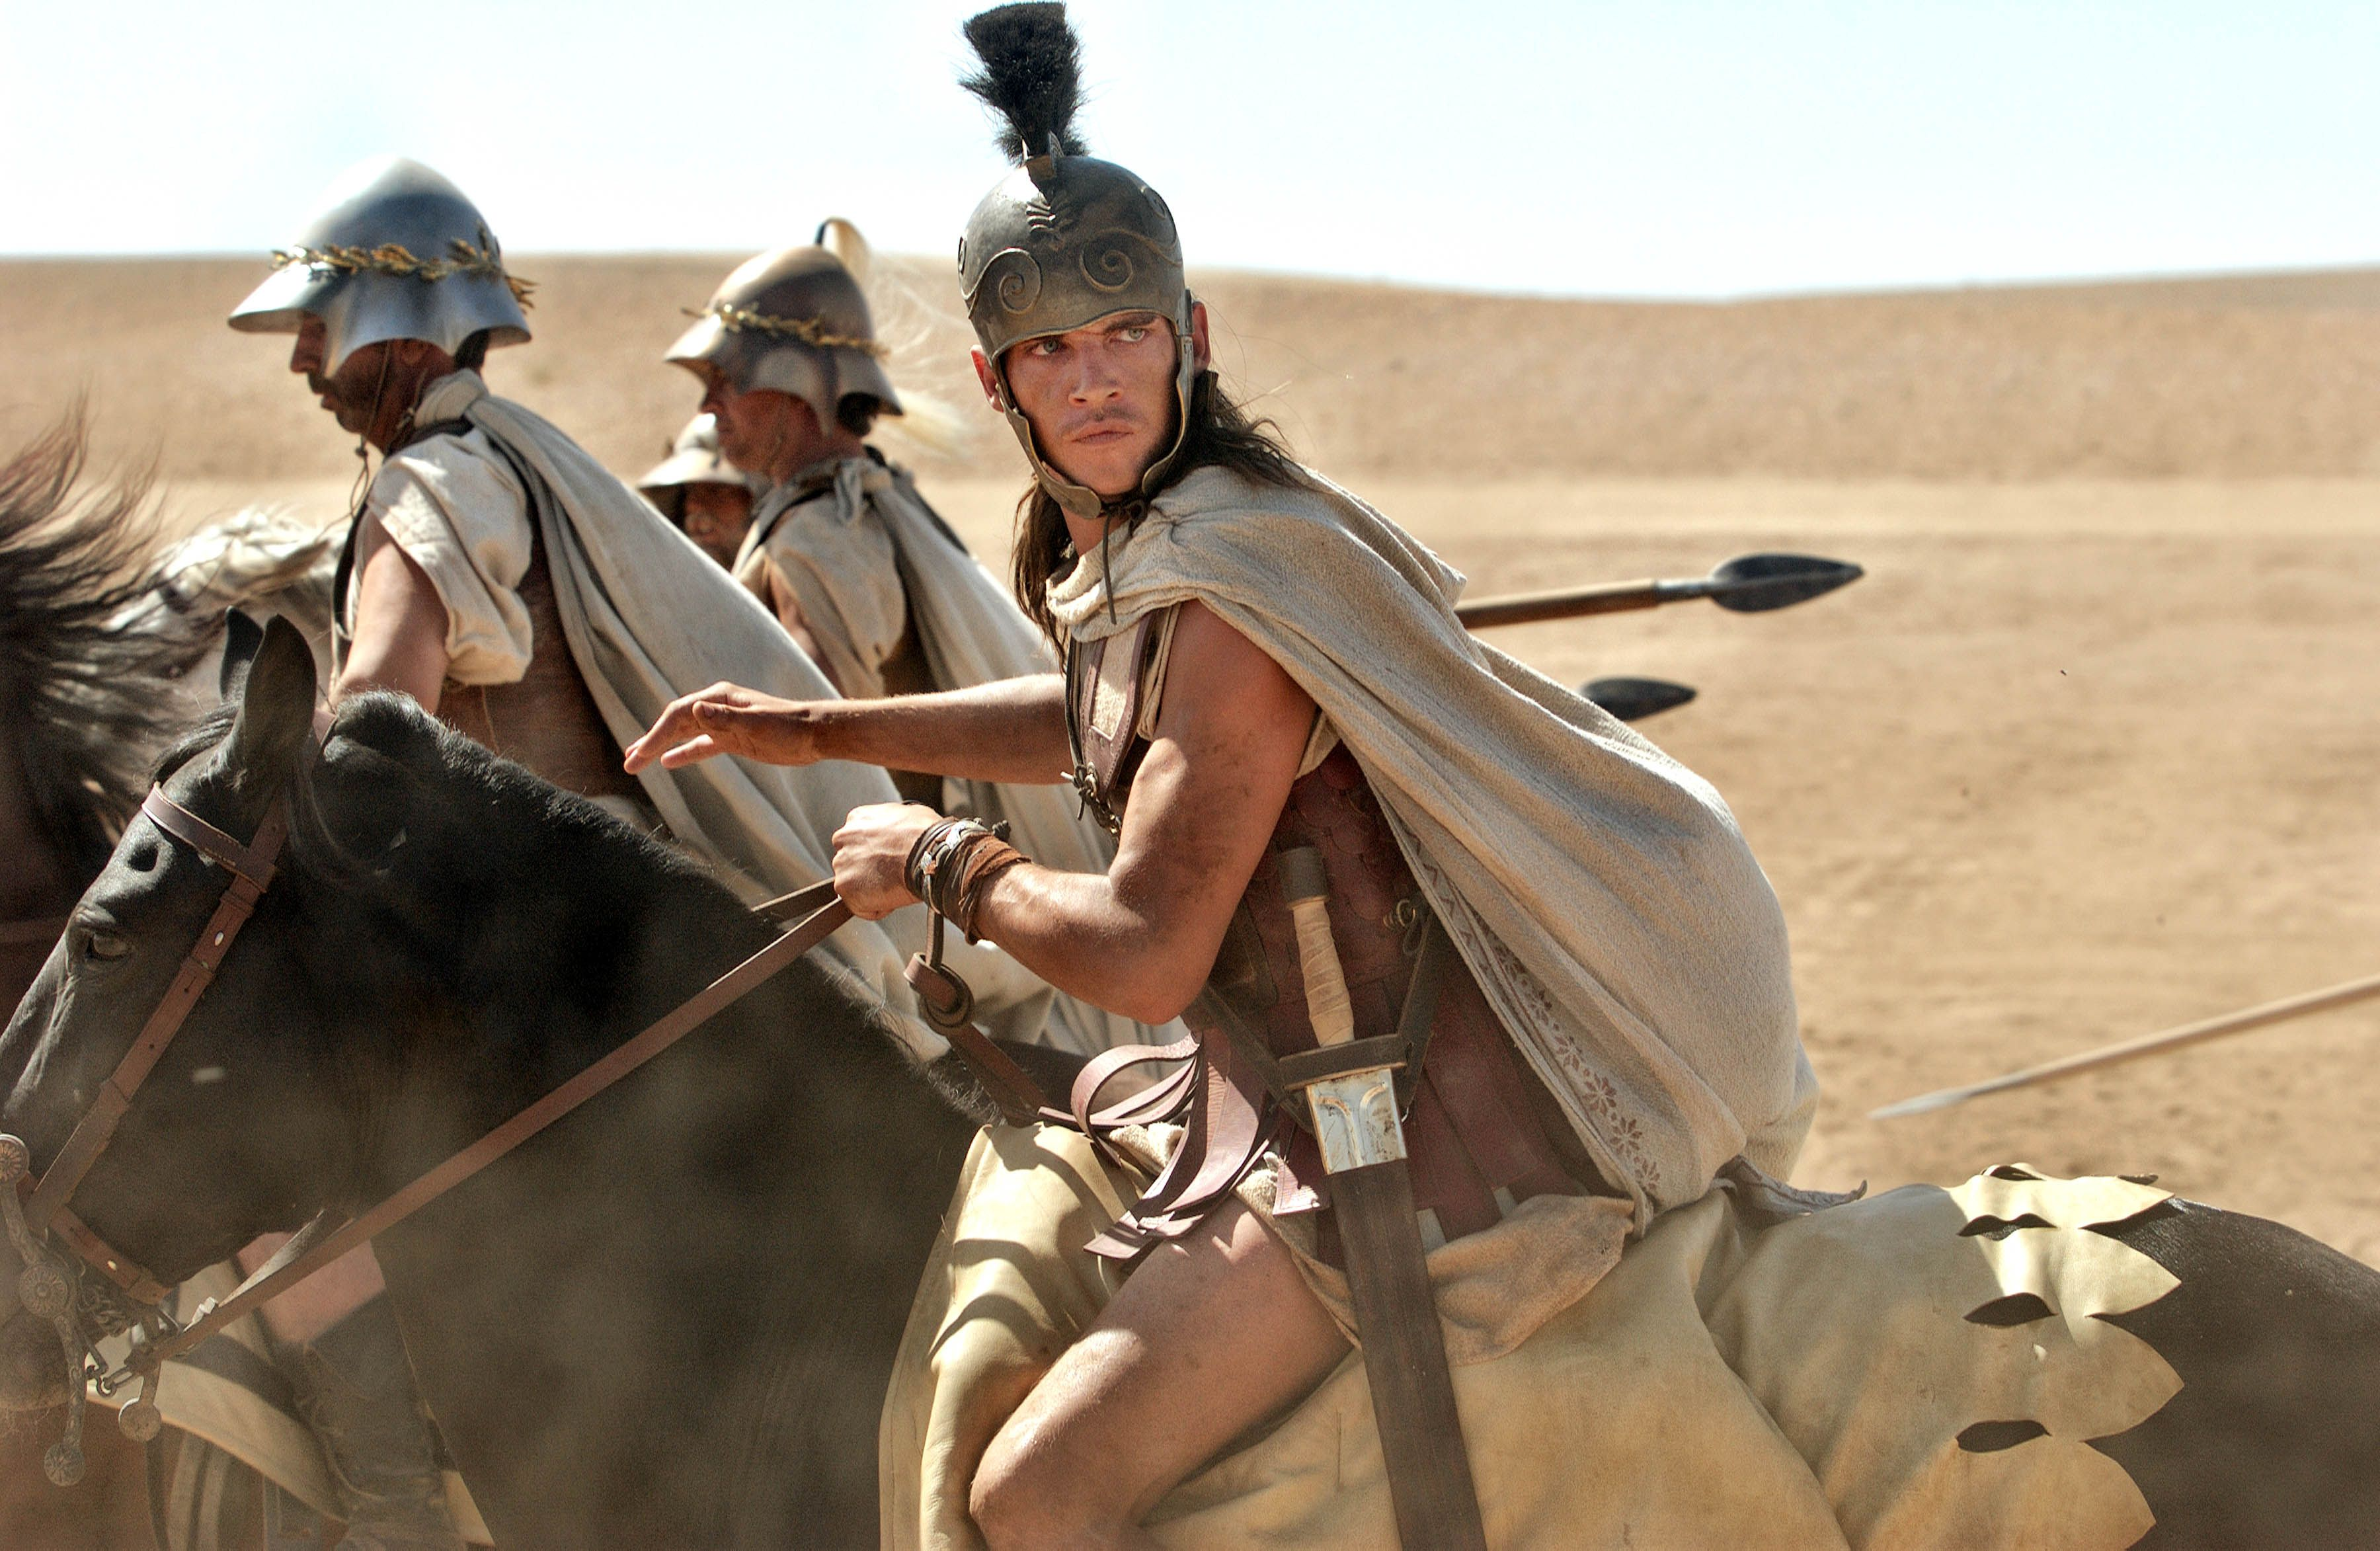 A reappraisal of oliver stone's alexander